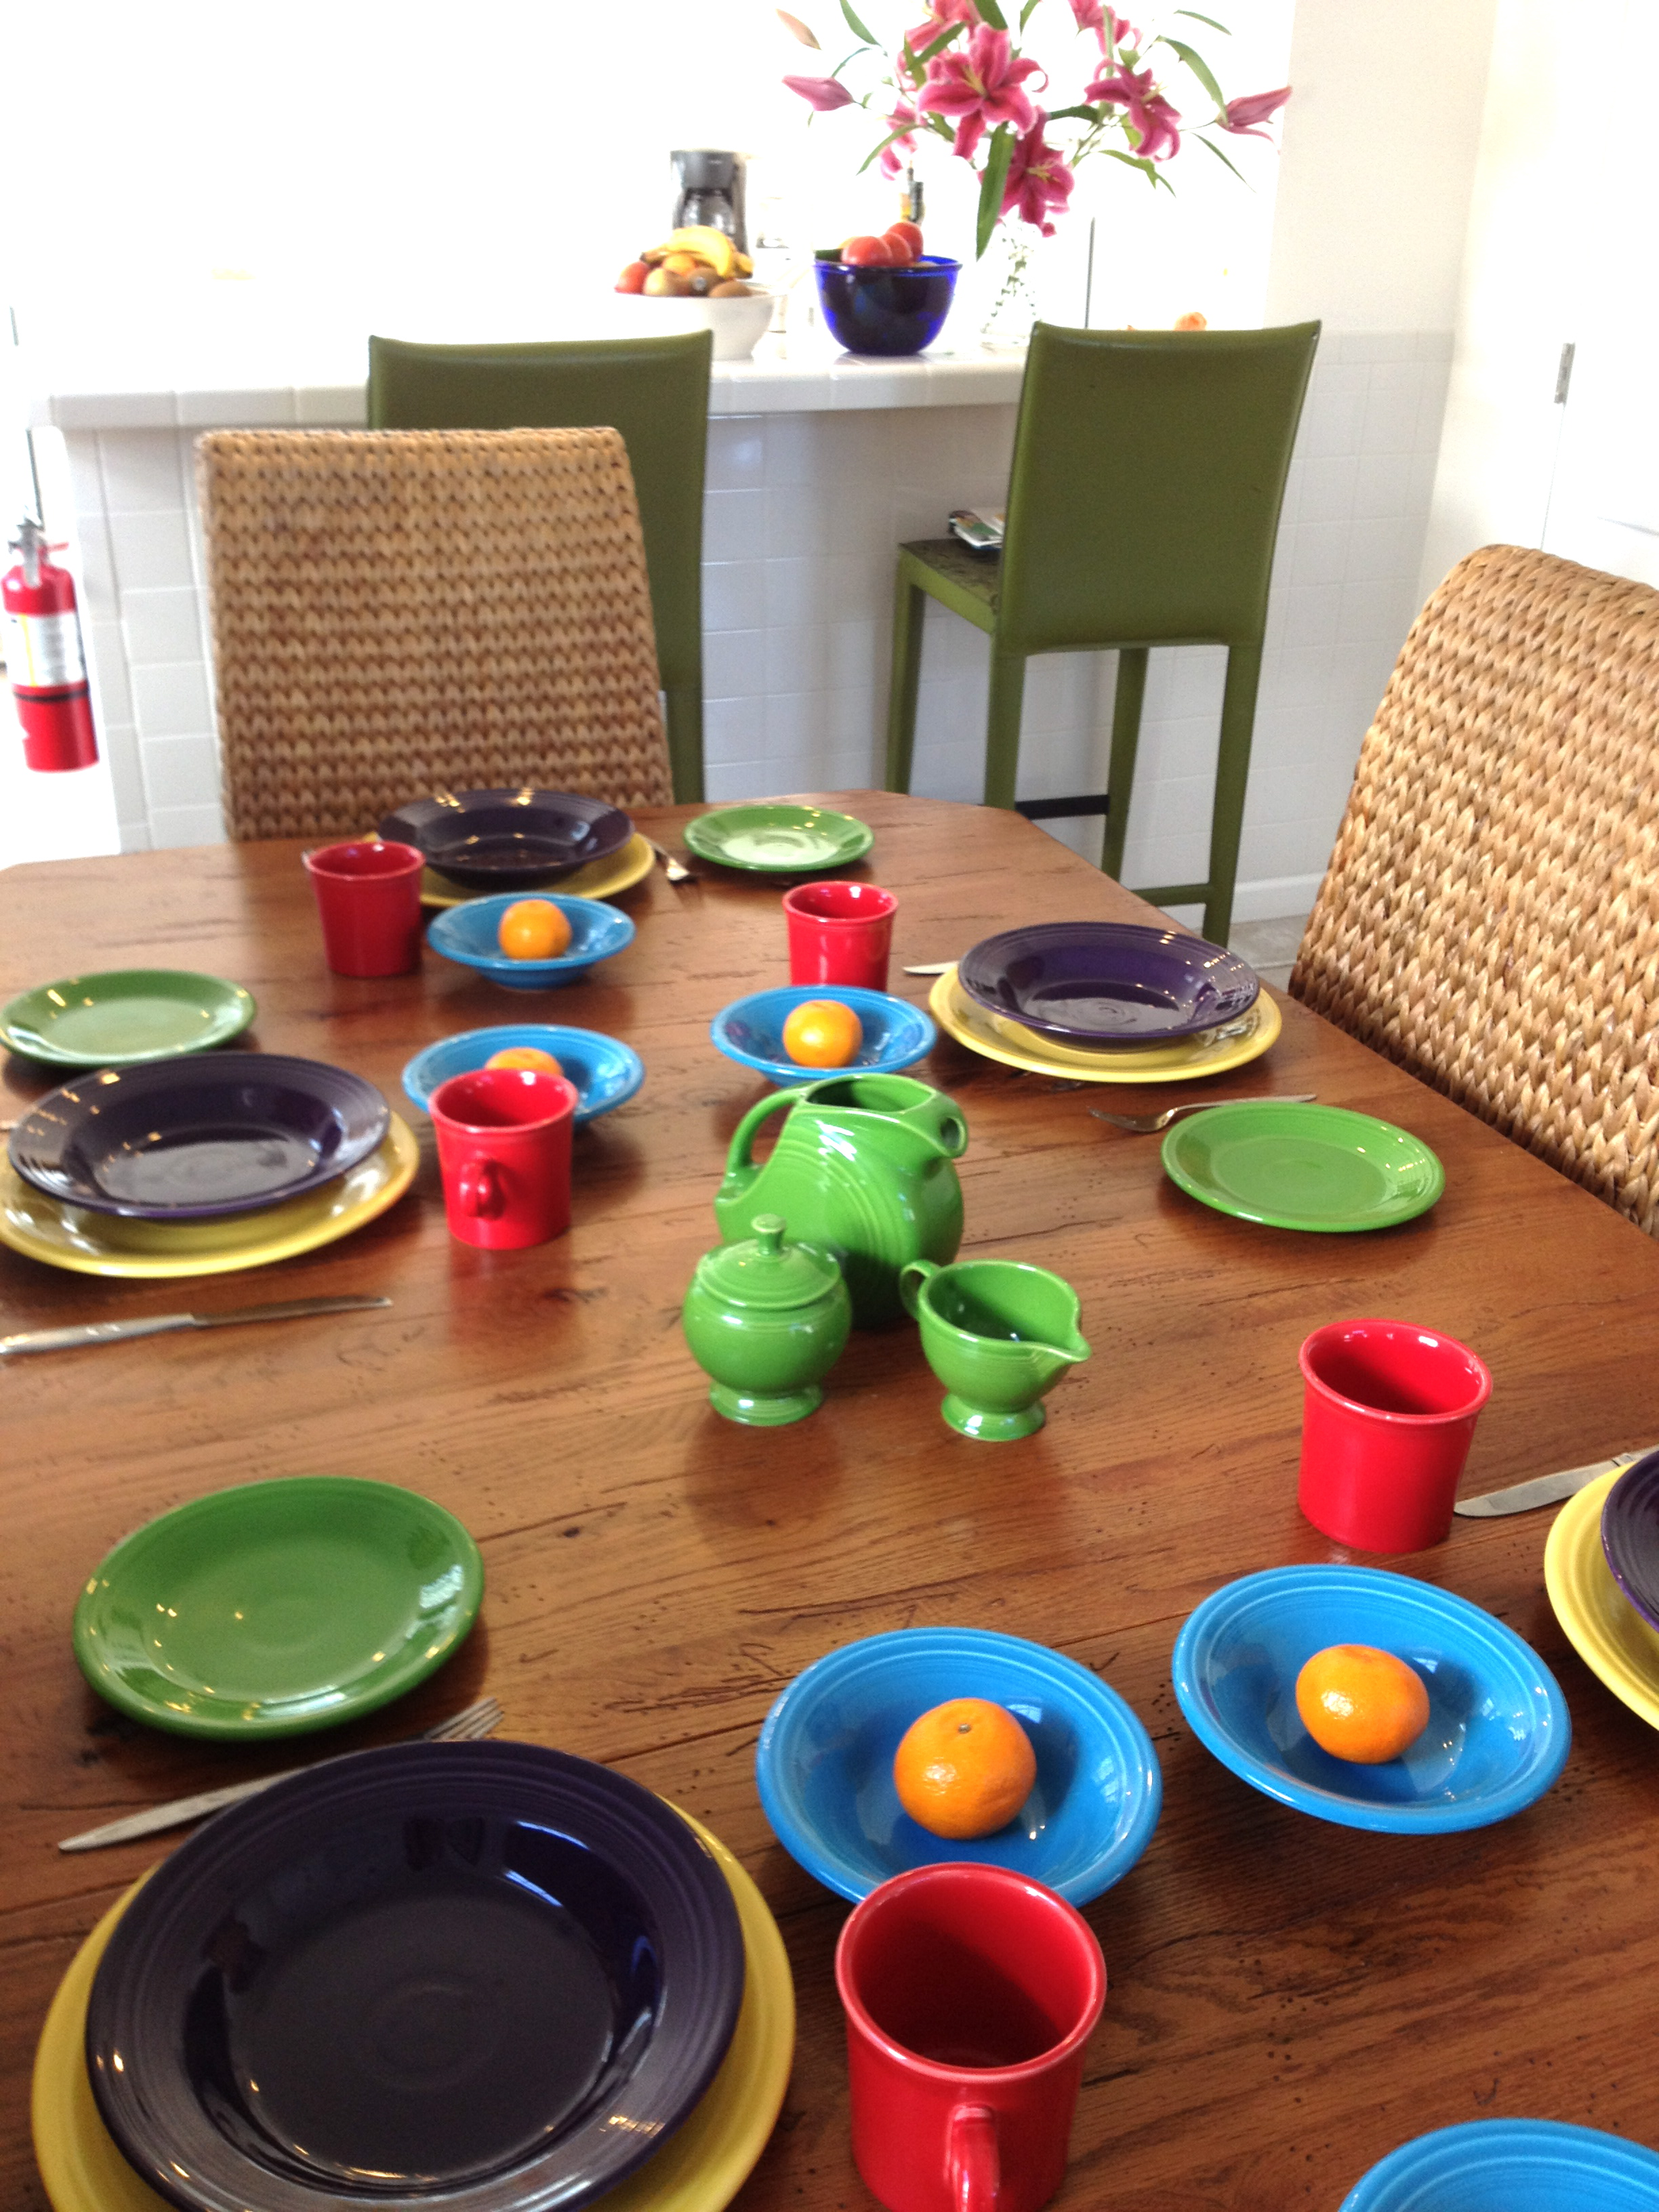 Awesome Collections Of Fiestaware For Dinnerware Ideas: Colorful Diningware Set By Fiestaware On Wooden Dining Table With Wicker Dining Chairs For Dining Room Decor Ideas